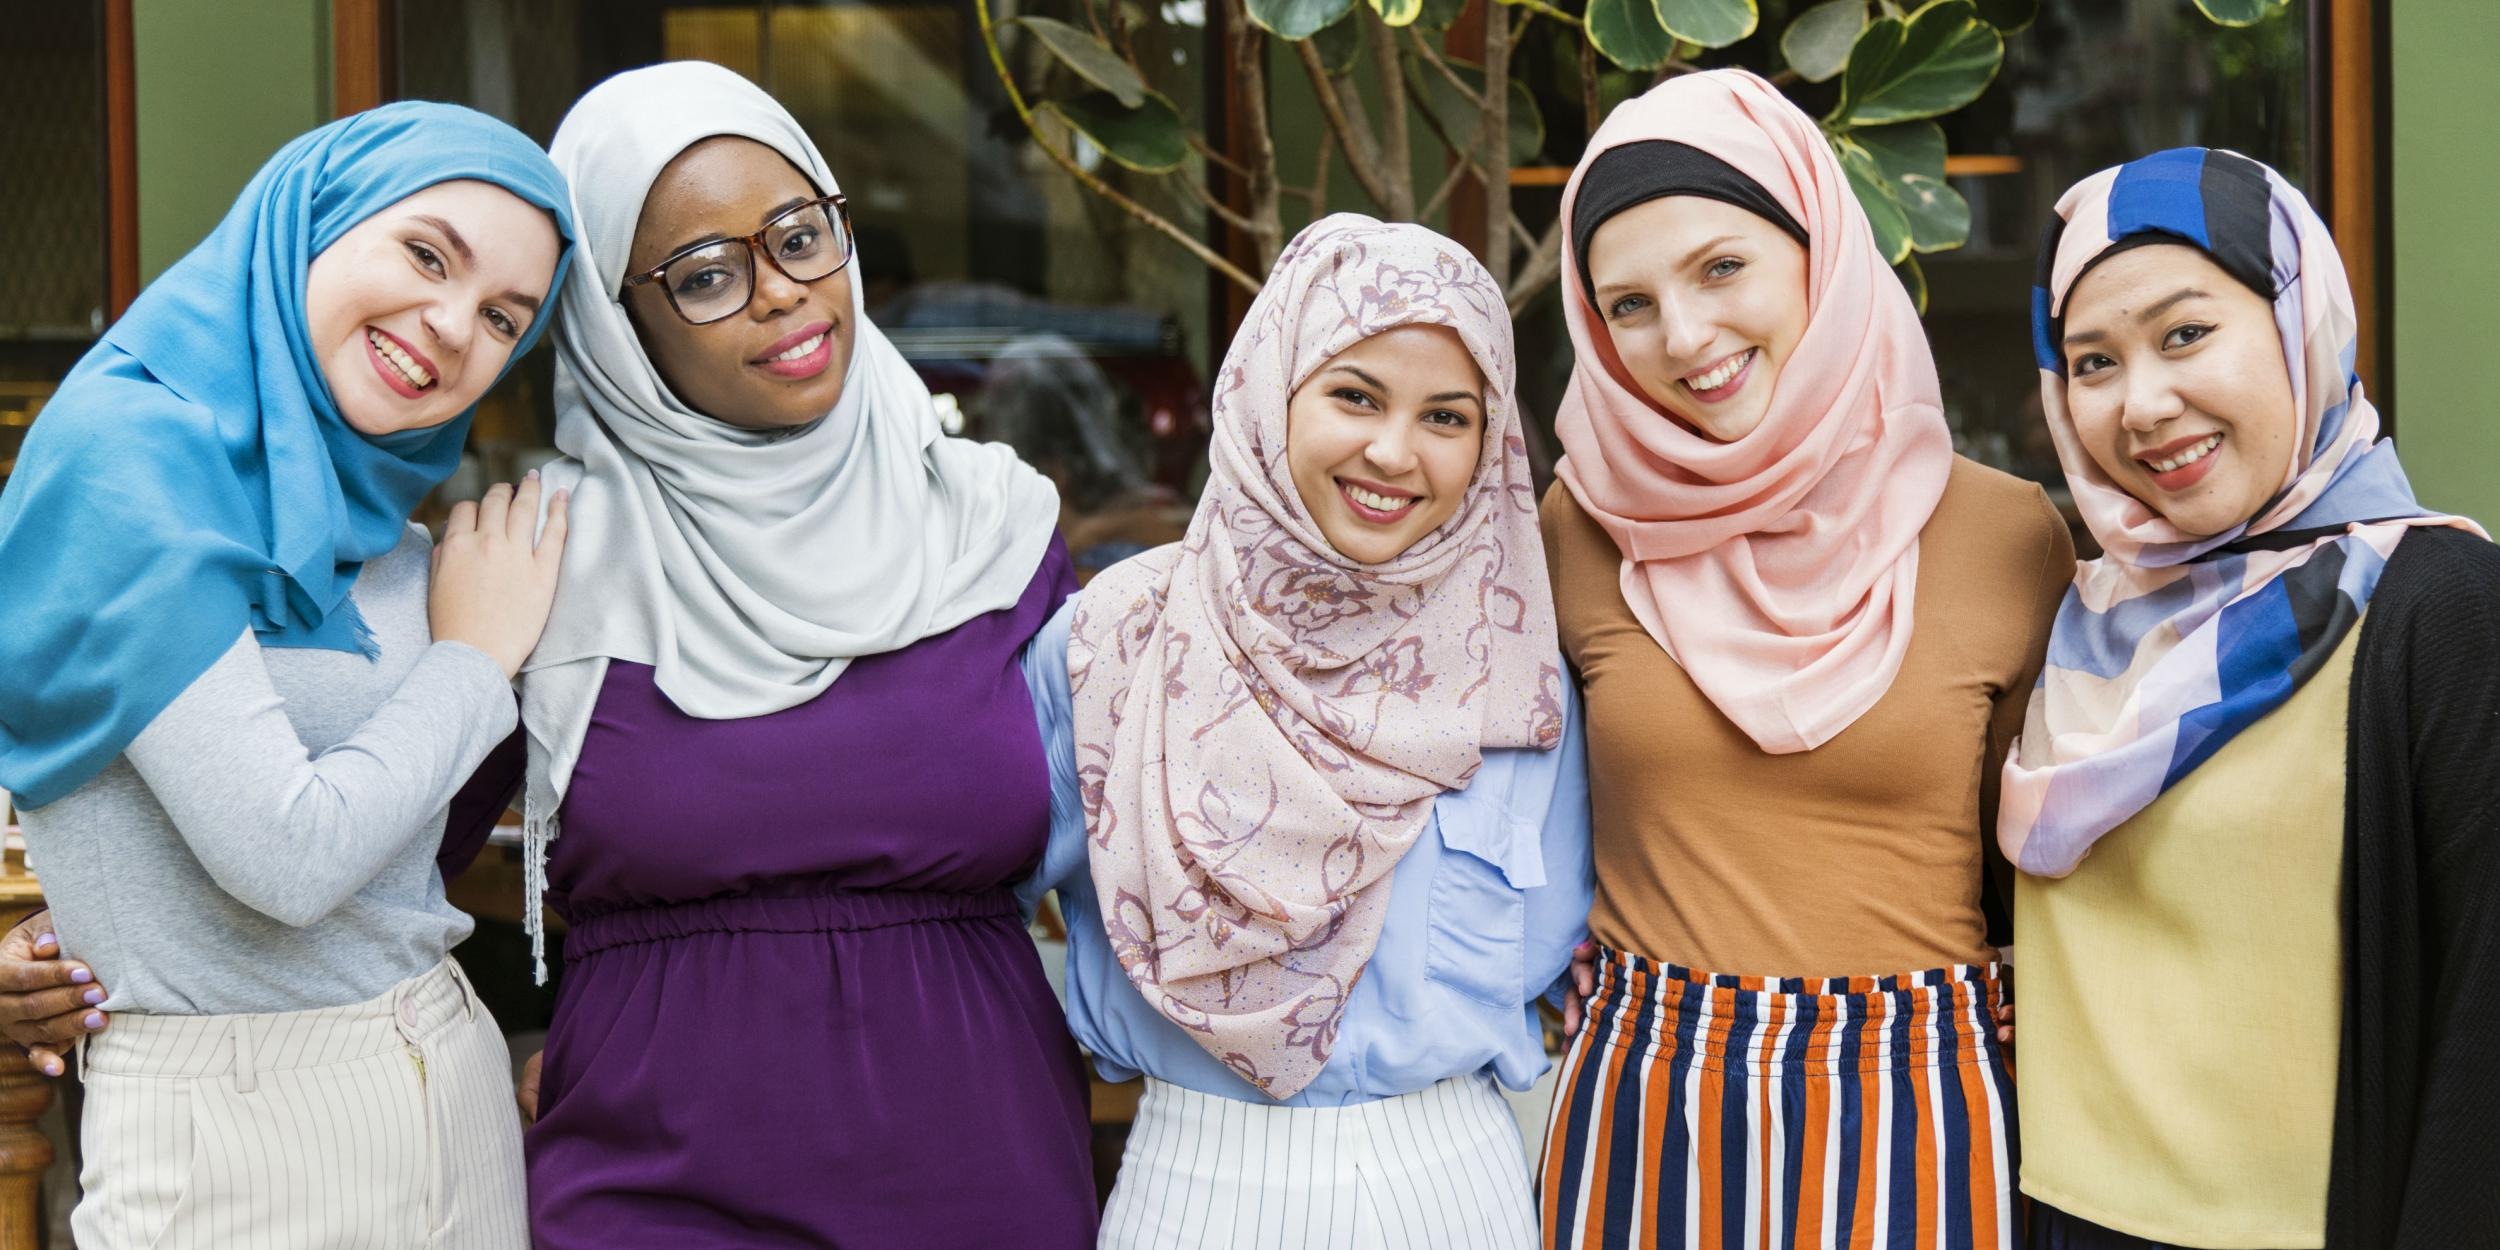 muslim single women in evansville The internet's best homepage with just 1-click, you can access everything you use daily: email, search, news, sports, social media, etc - 100% free & no ads.